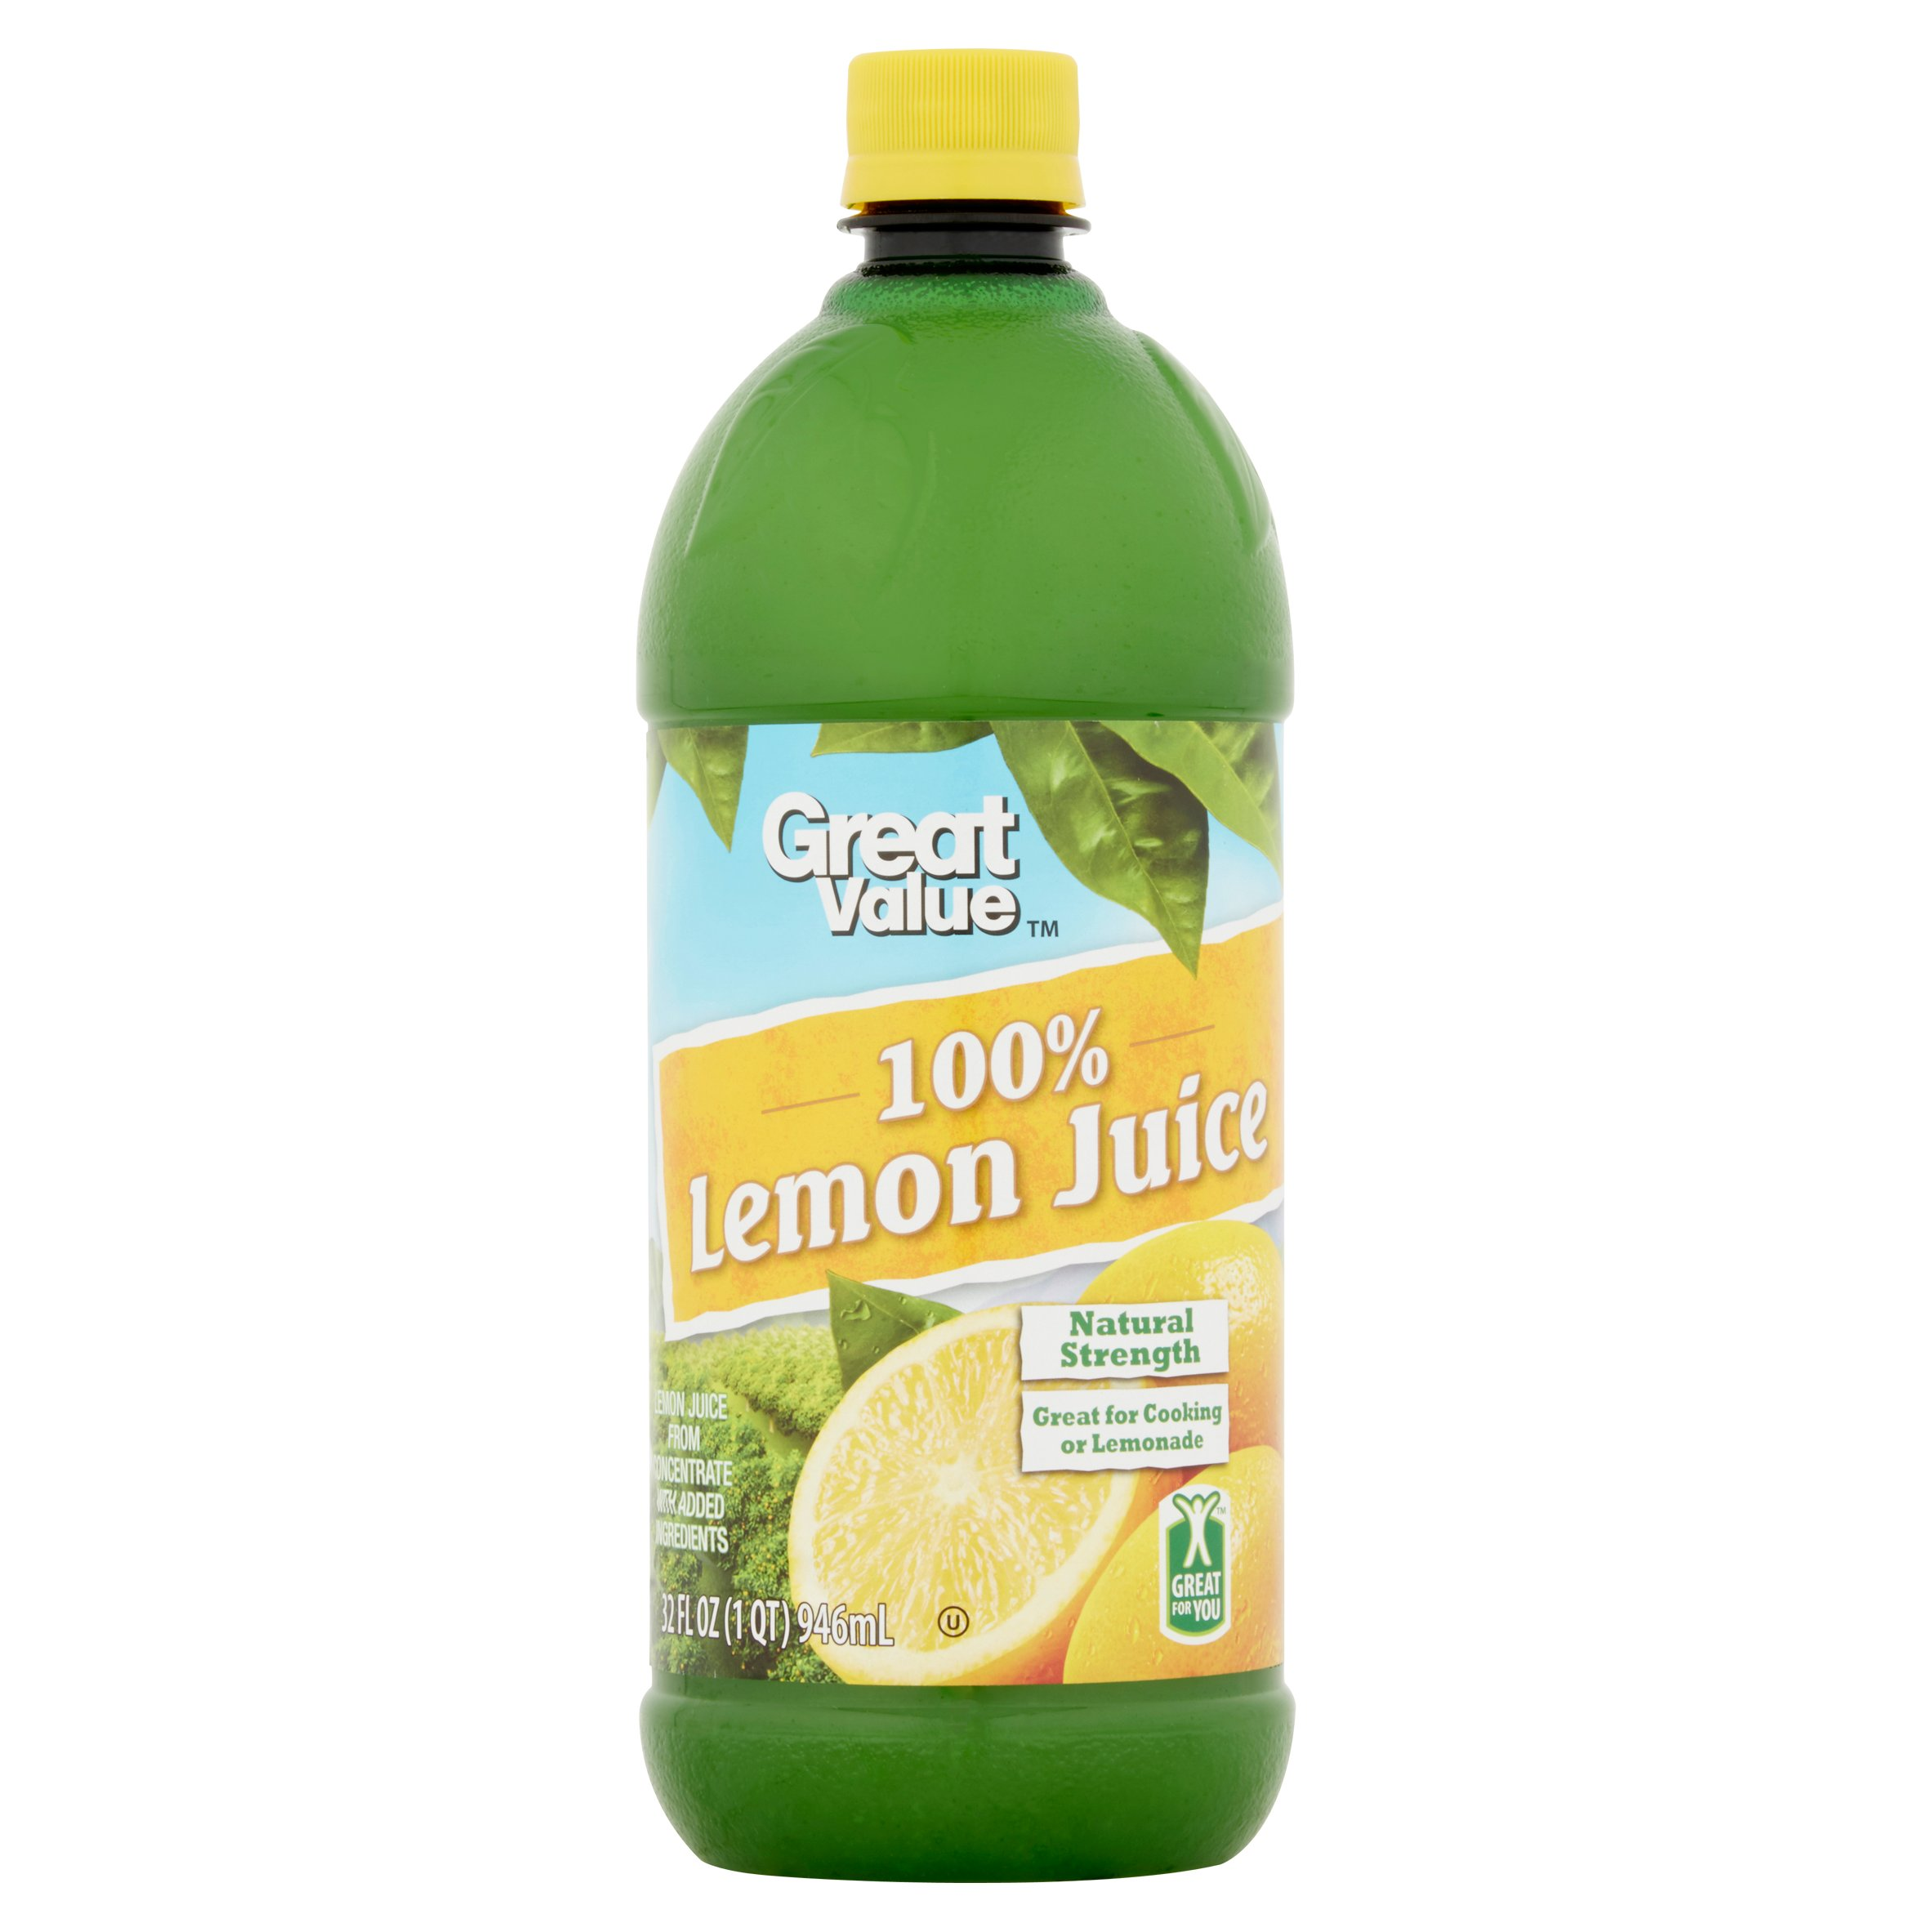 Great Value 100% Lemon Juice, 32 Fl Oz by Wal-Mart Stores, Inc.